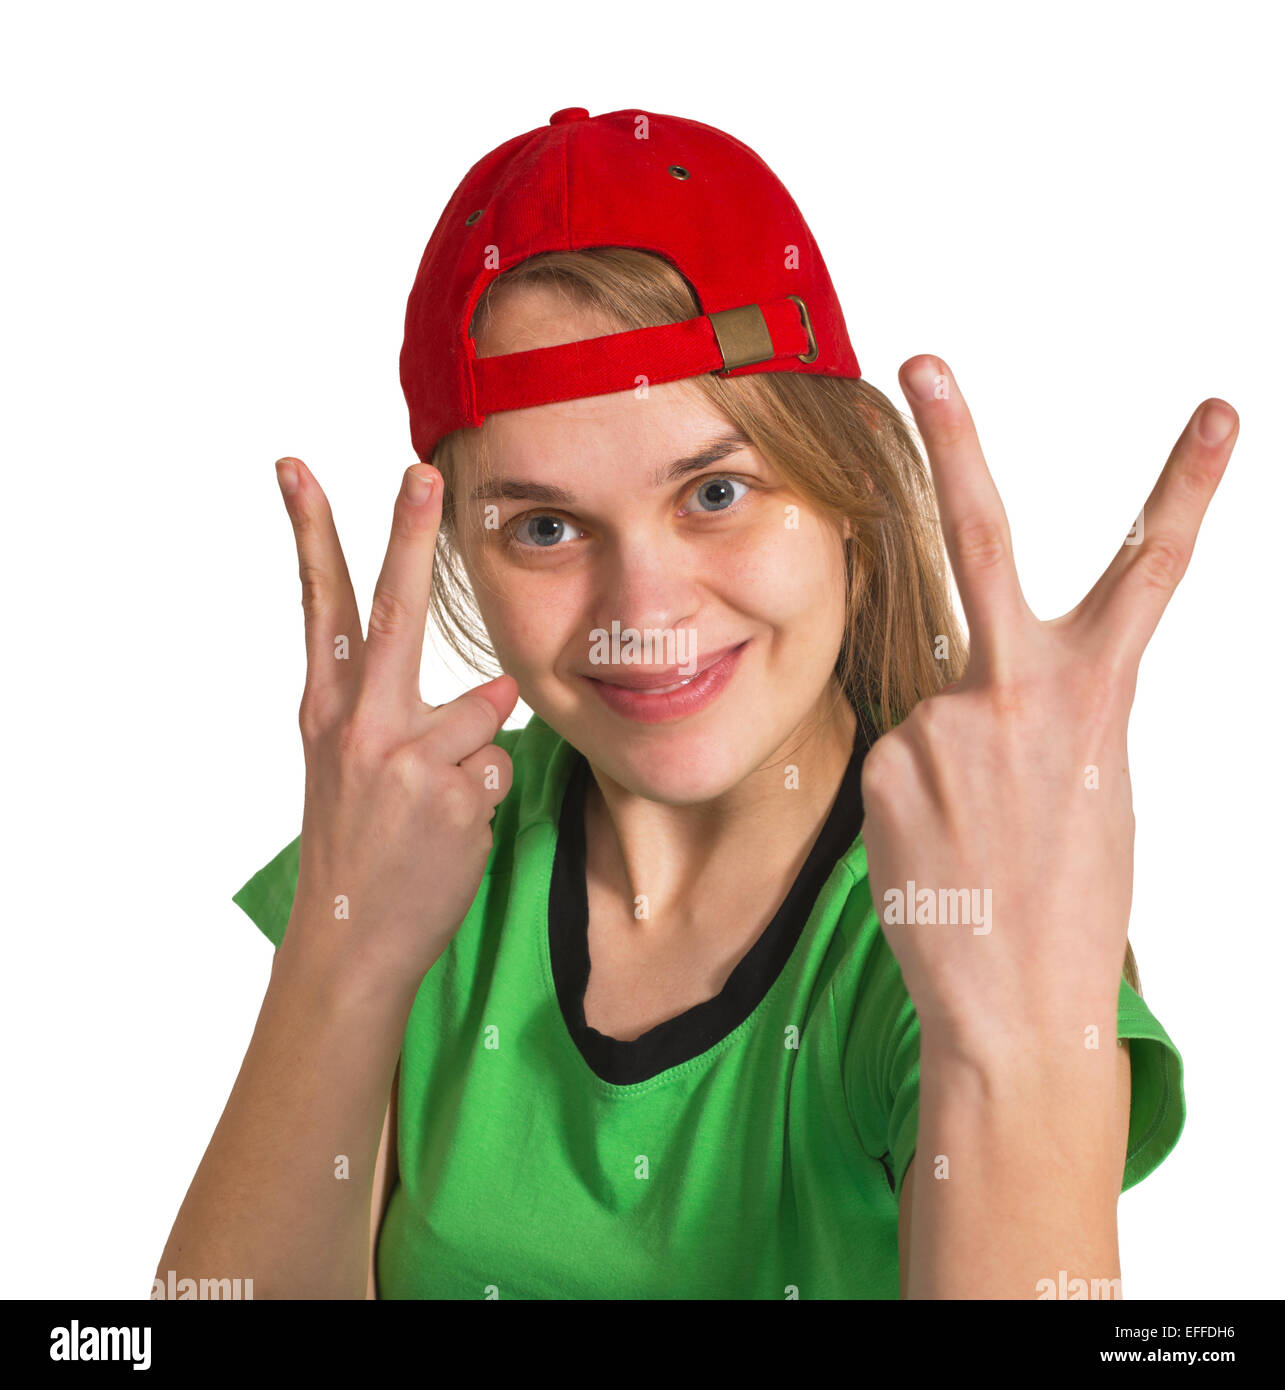 girl making grimace  on the white background - Stock Image